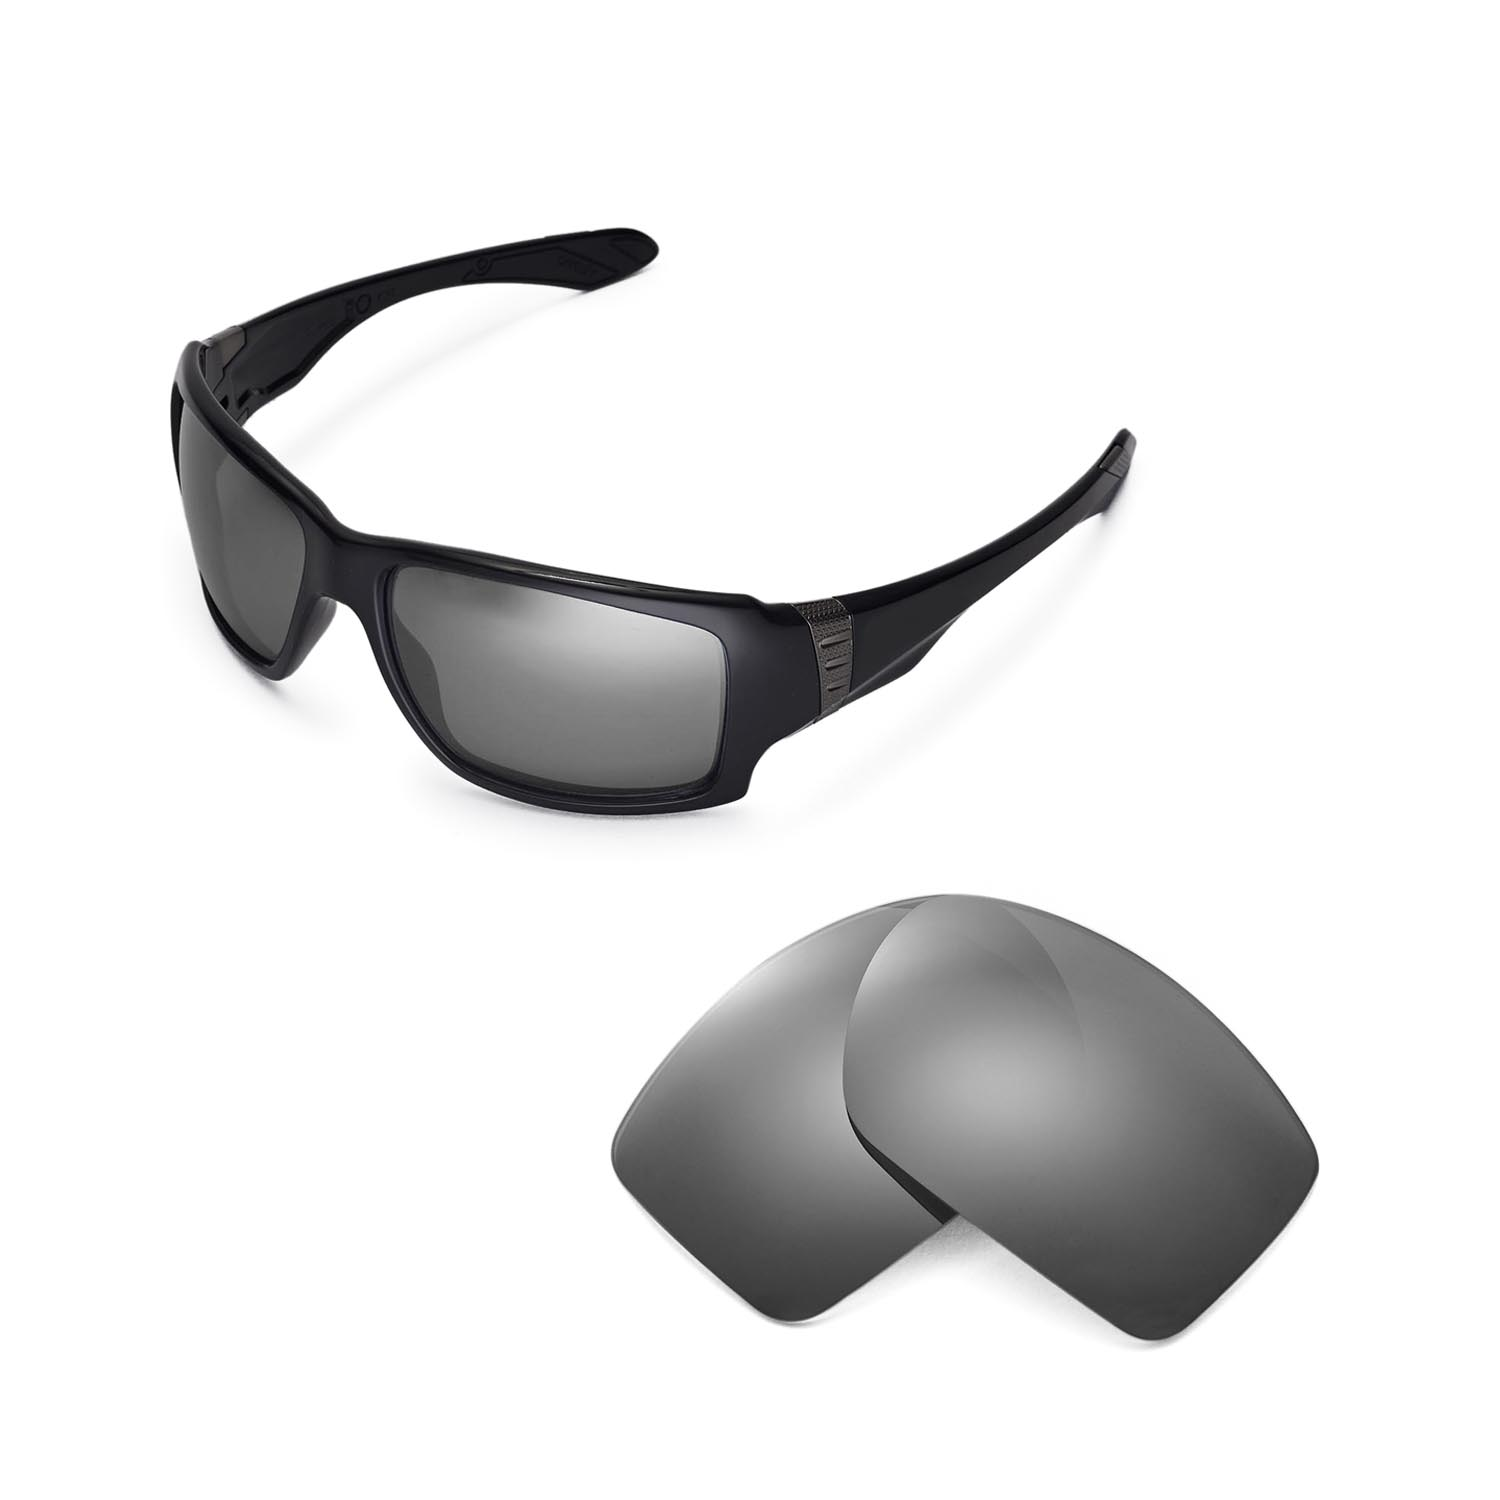 75da792d4ec Details about New Walleva Polarized Titanium Replacement Lenses For Oakley  Big Taco Sunglasses